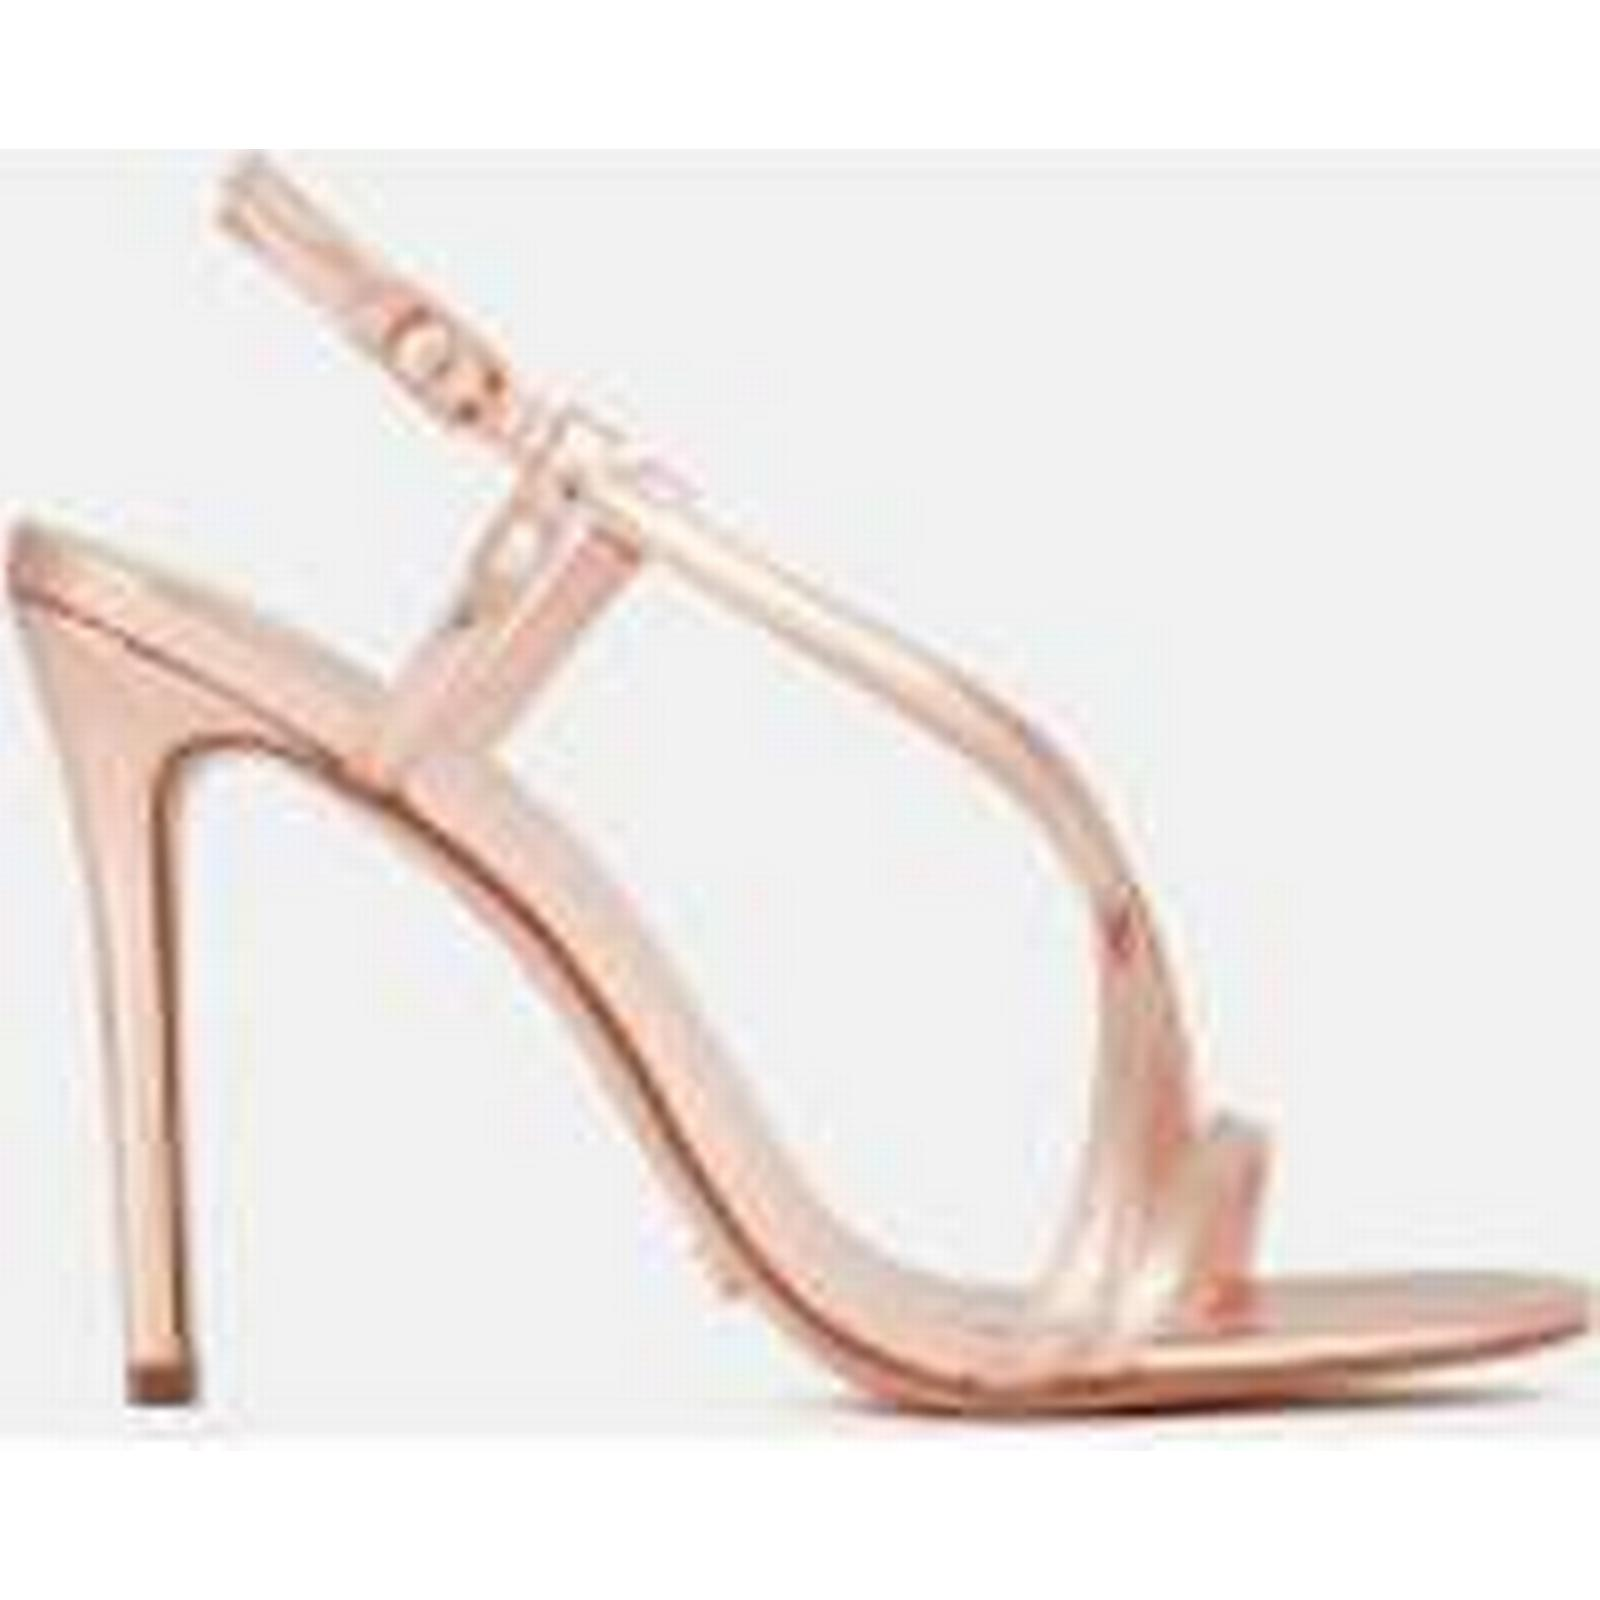 Dune Women's Madeena Strappy Heeled Sandals - Rose Gold Gold - UK 6 - Gold Gold 49ad43